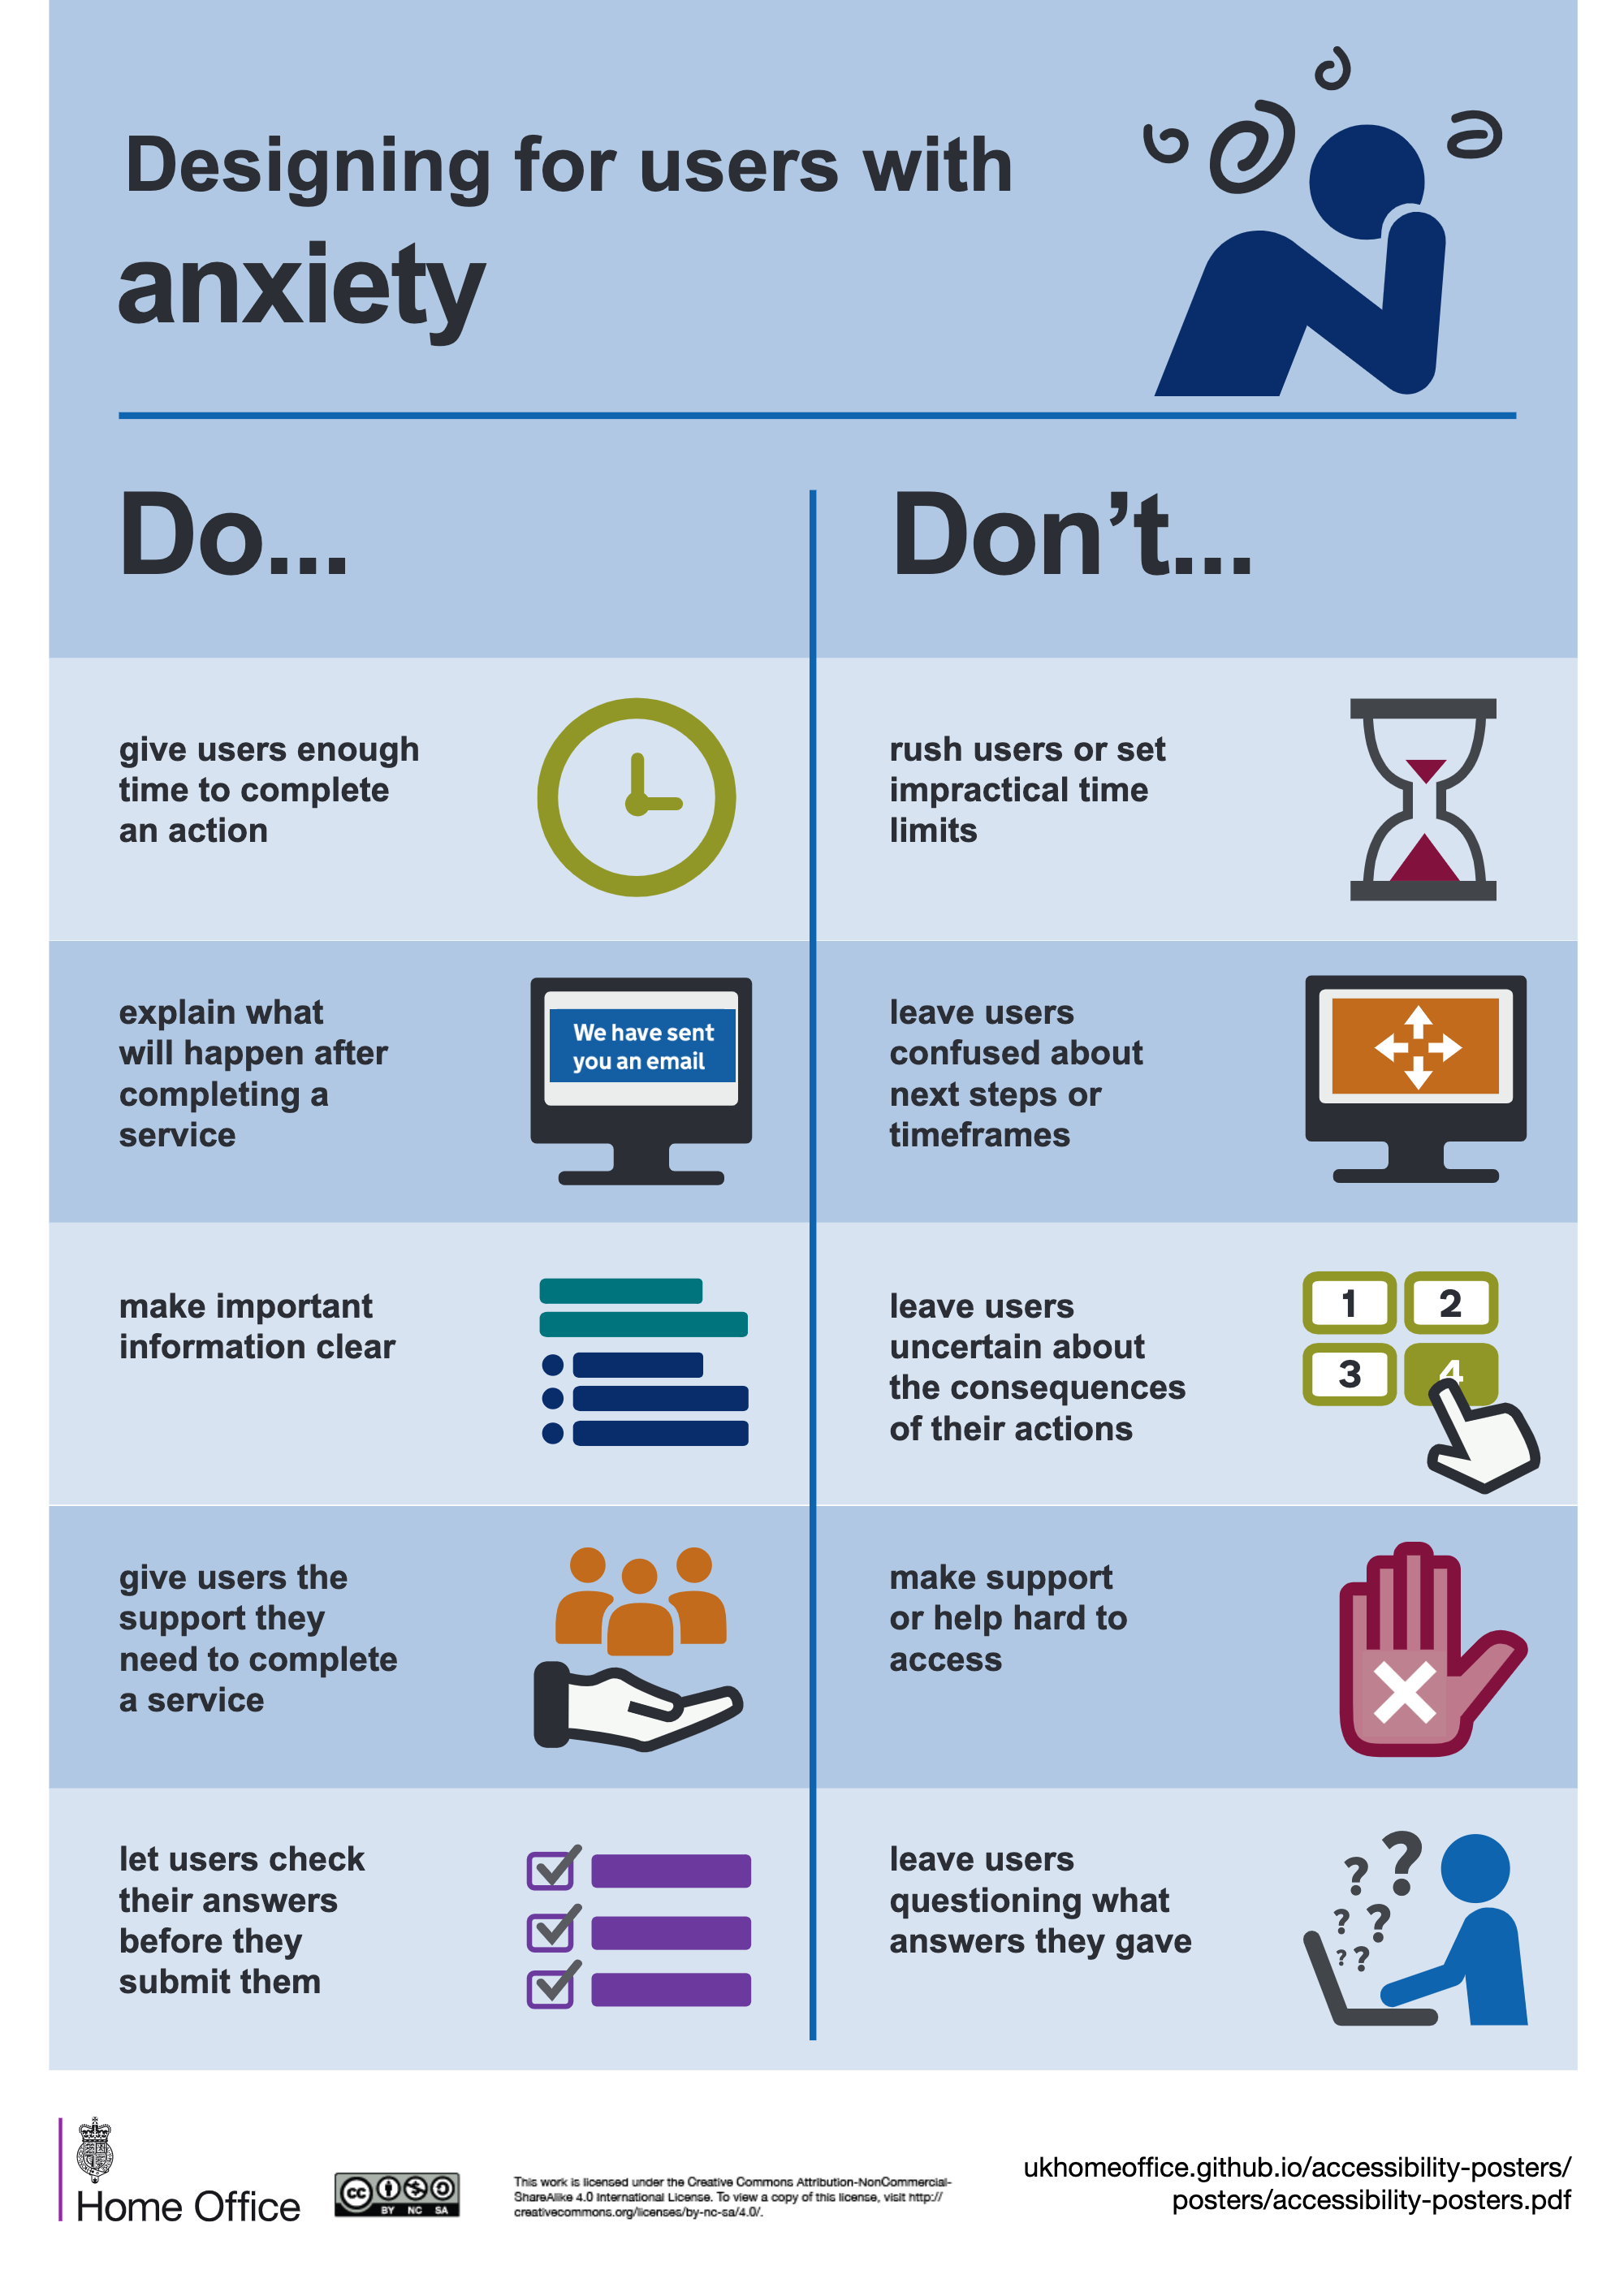 Designing for users with anxiety poster from the UK Home Office. A list of dos and don'ts.